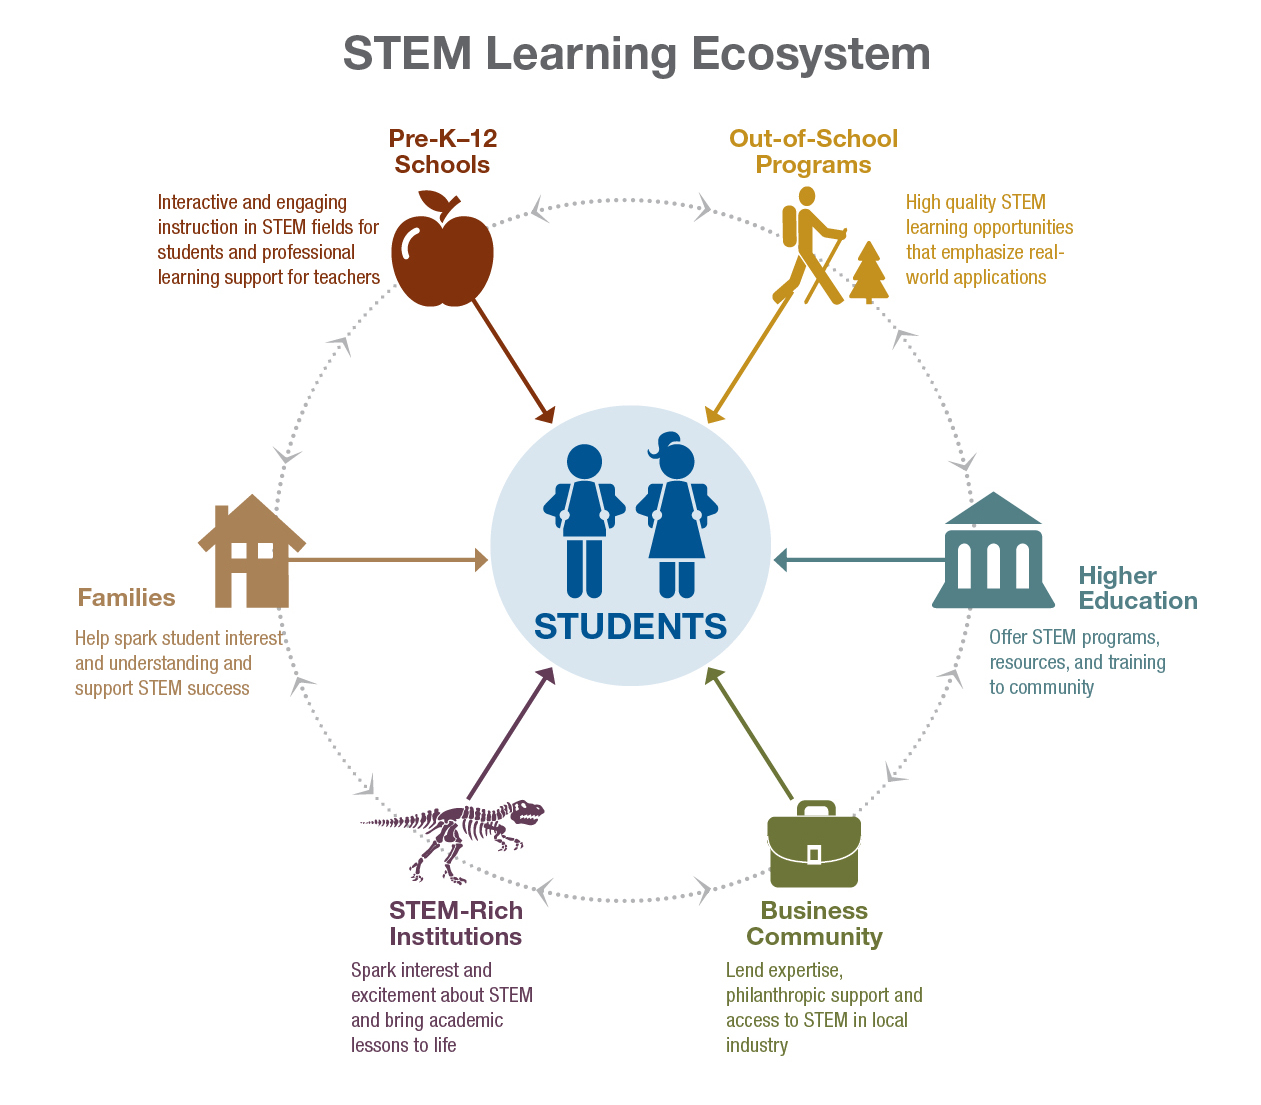 STEM Learning Ecosystem